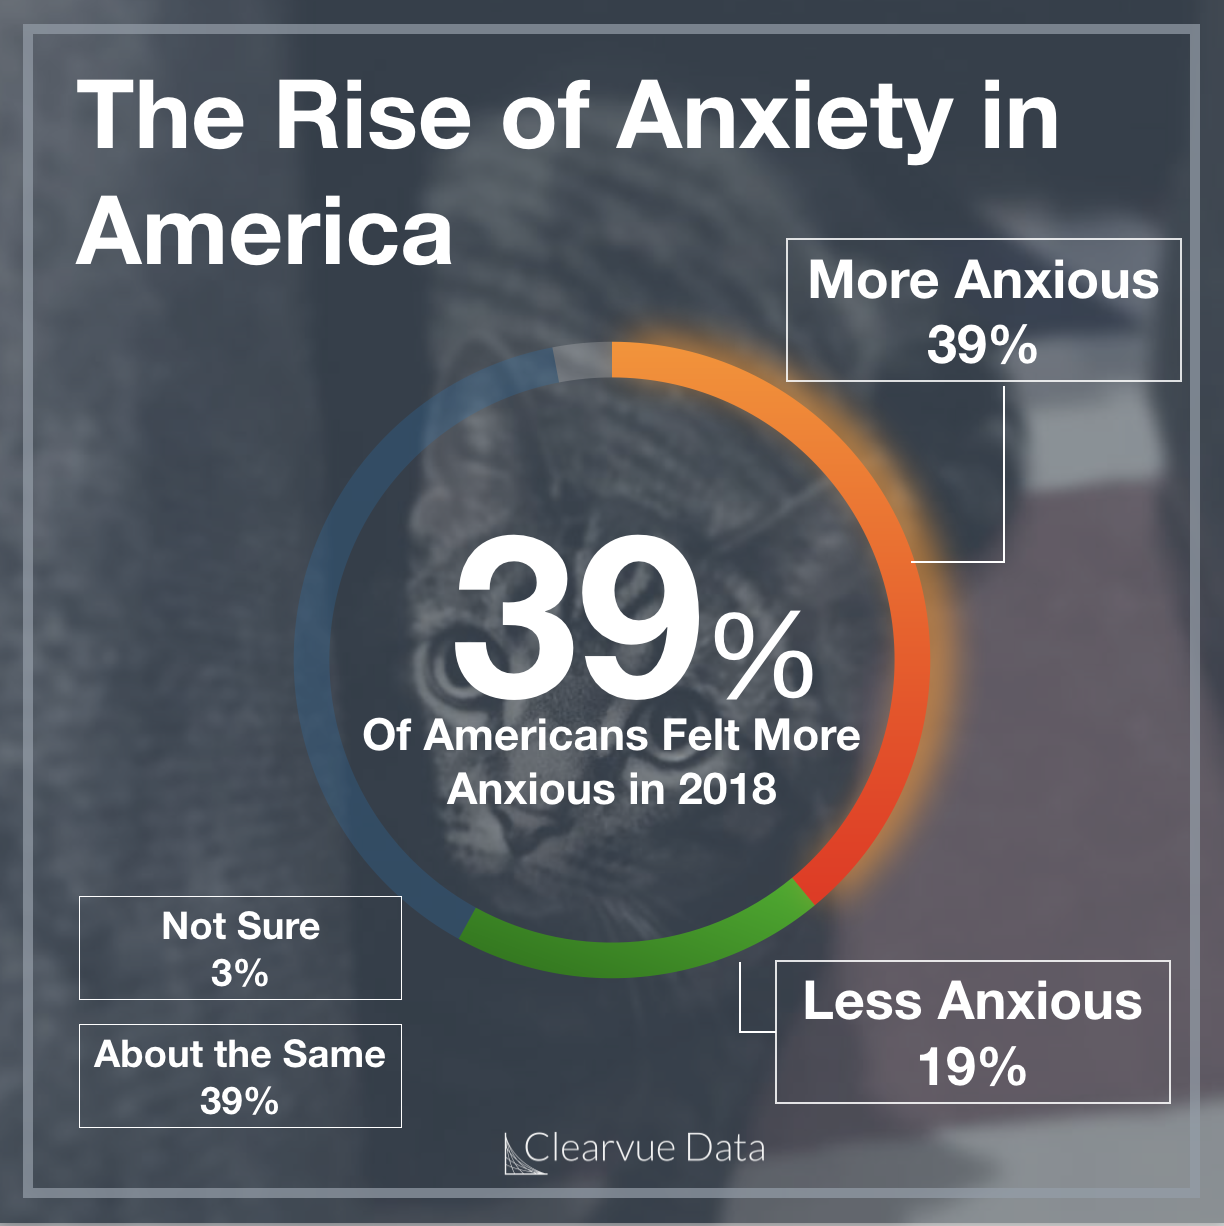 Many Americans are more anxious in 2018